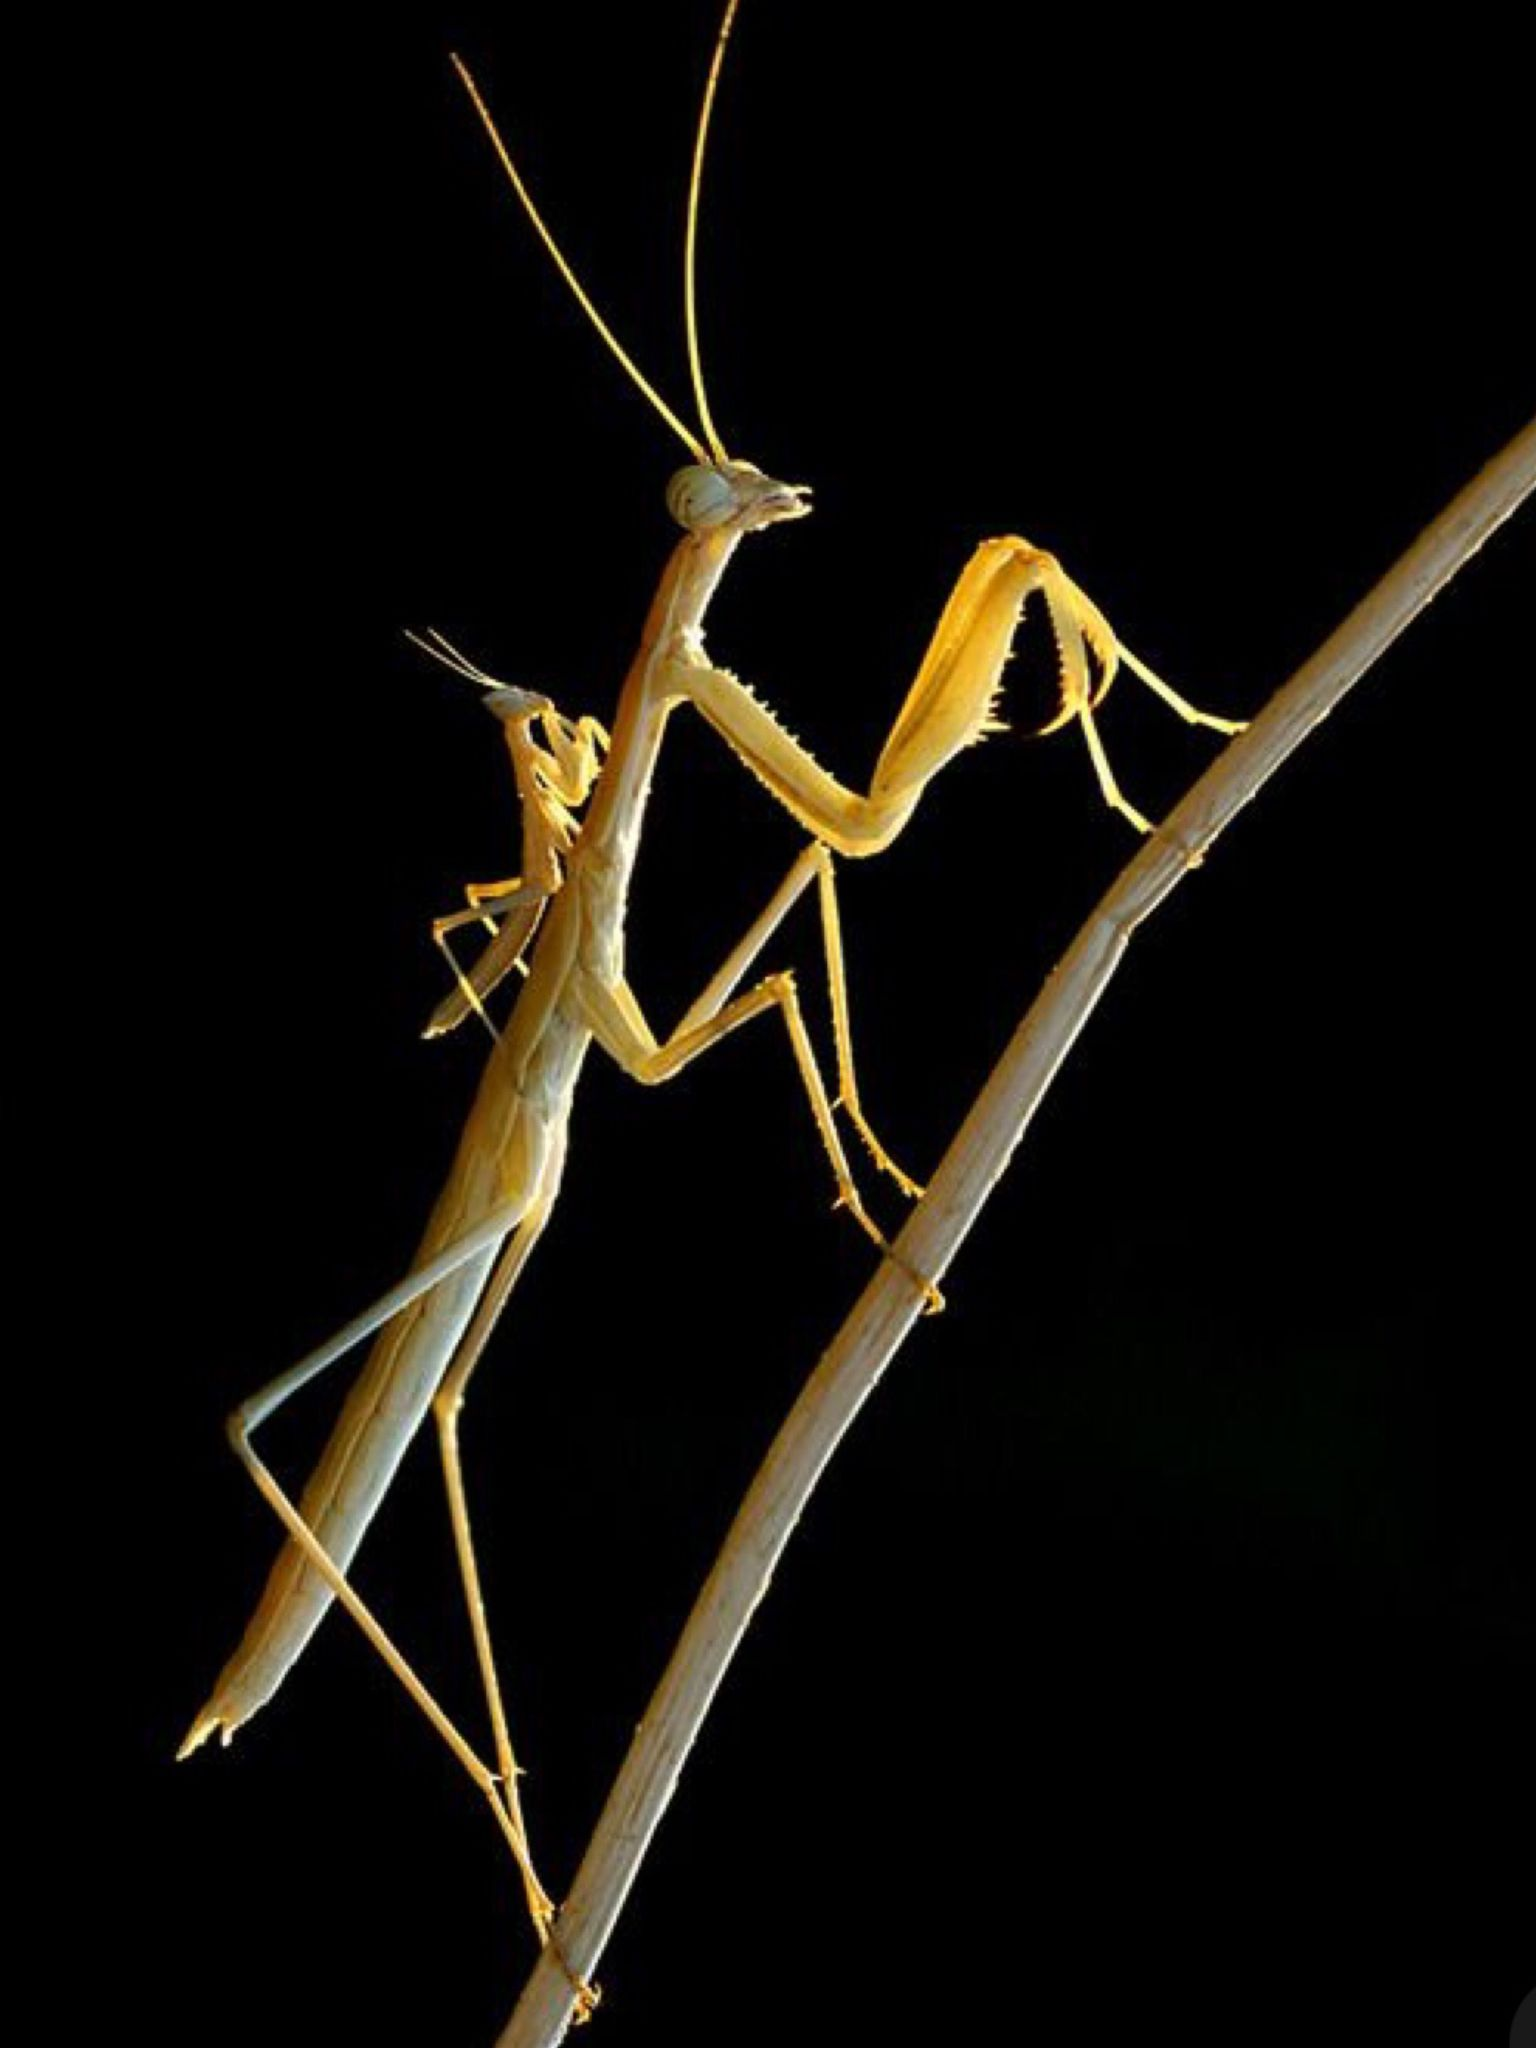 Pin By Darla Baker On Animals 2 Insects Praying Mantis Bugs And Insects